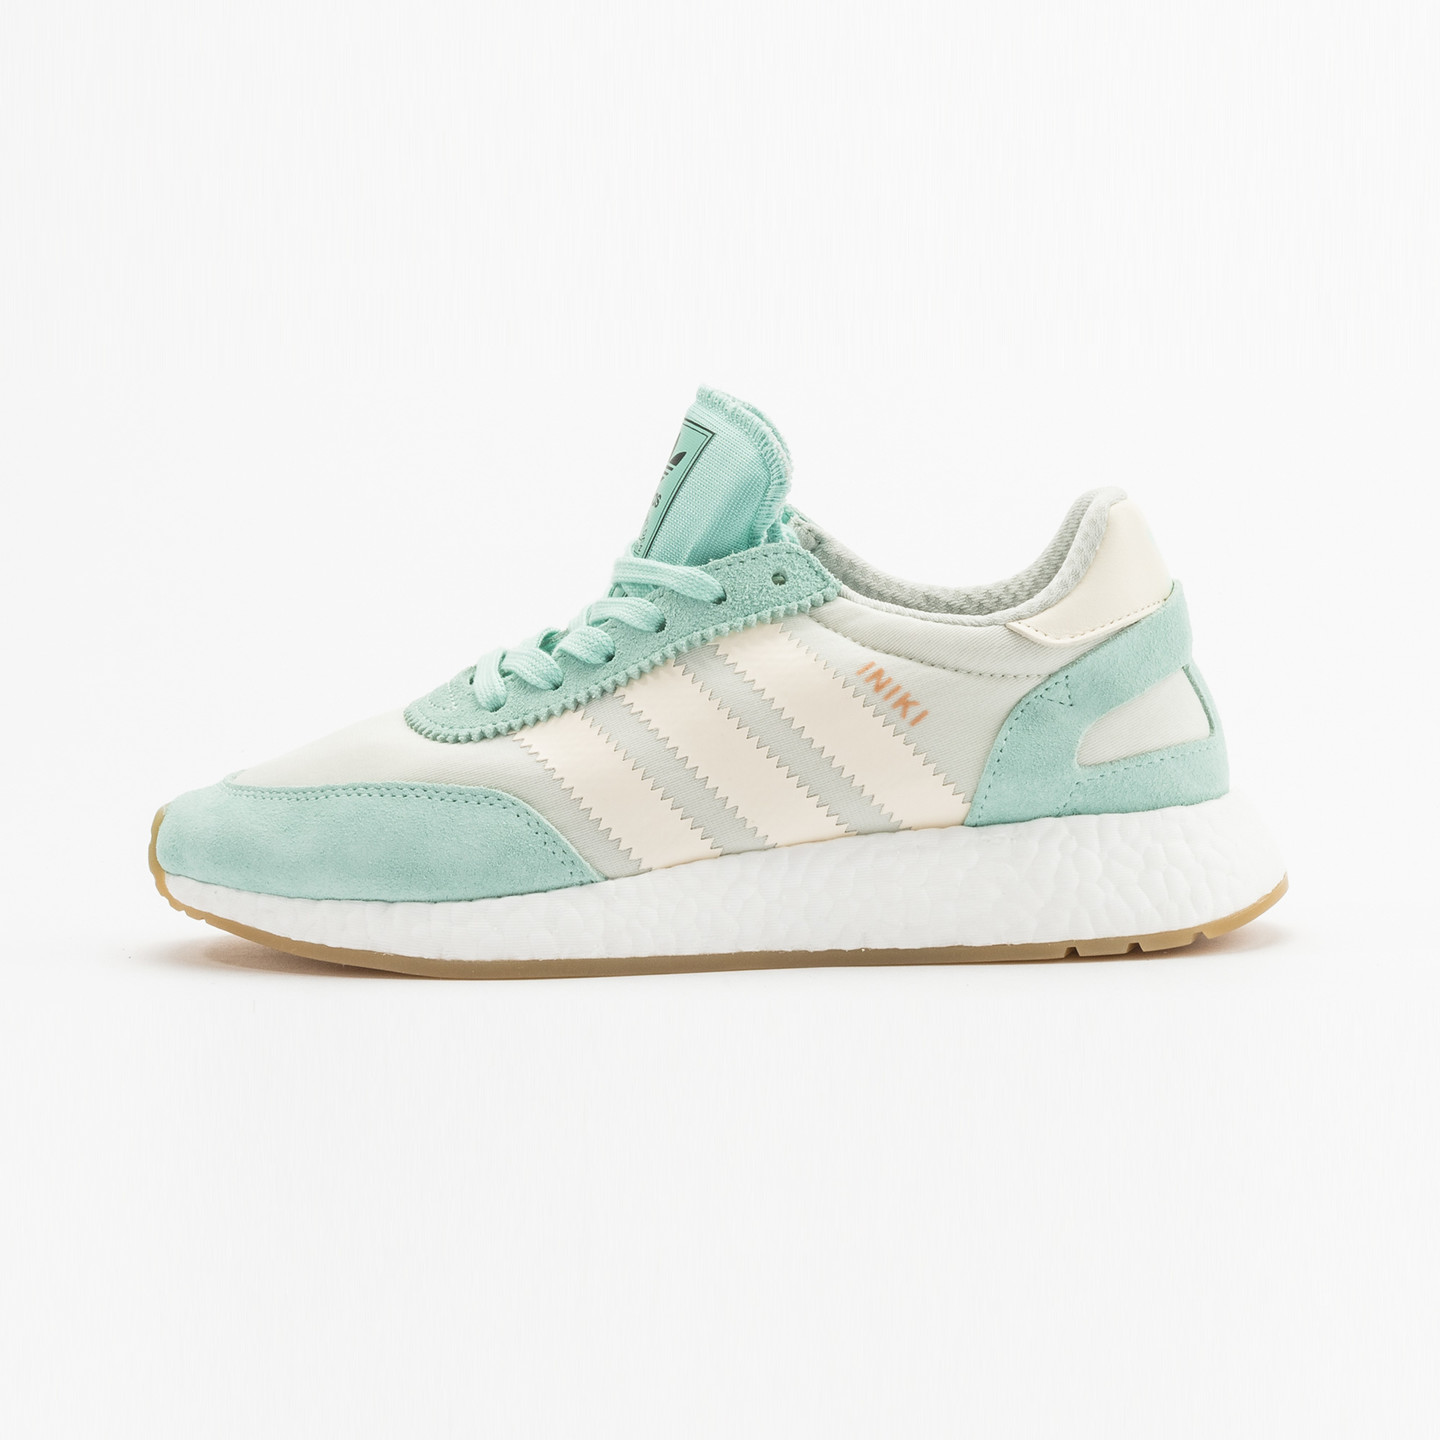 Adidas Iniki Runner W Easy Green / Cream White / Linen Green BA9994-42